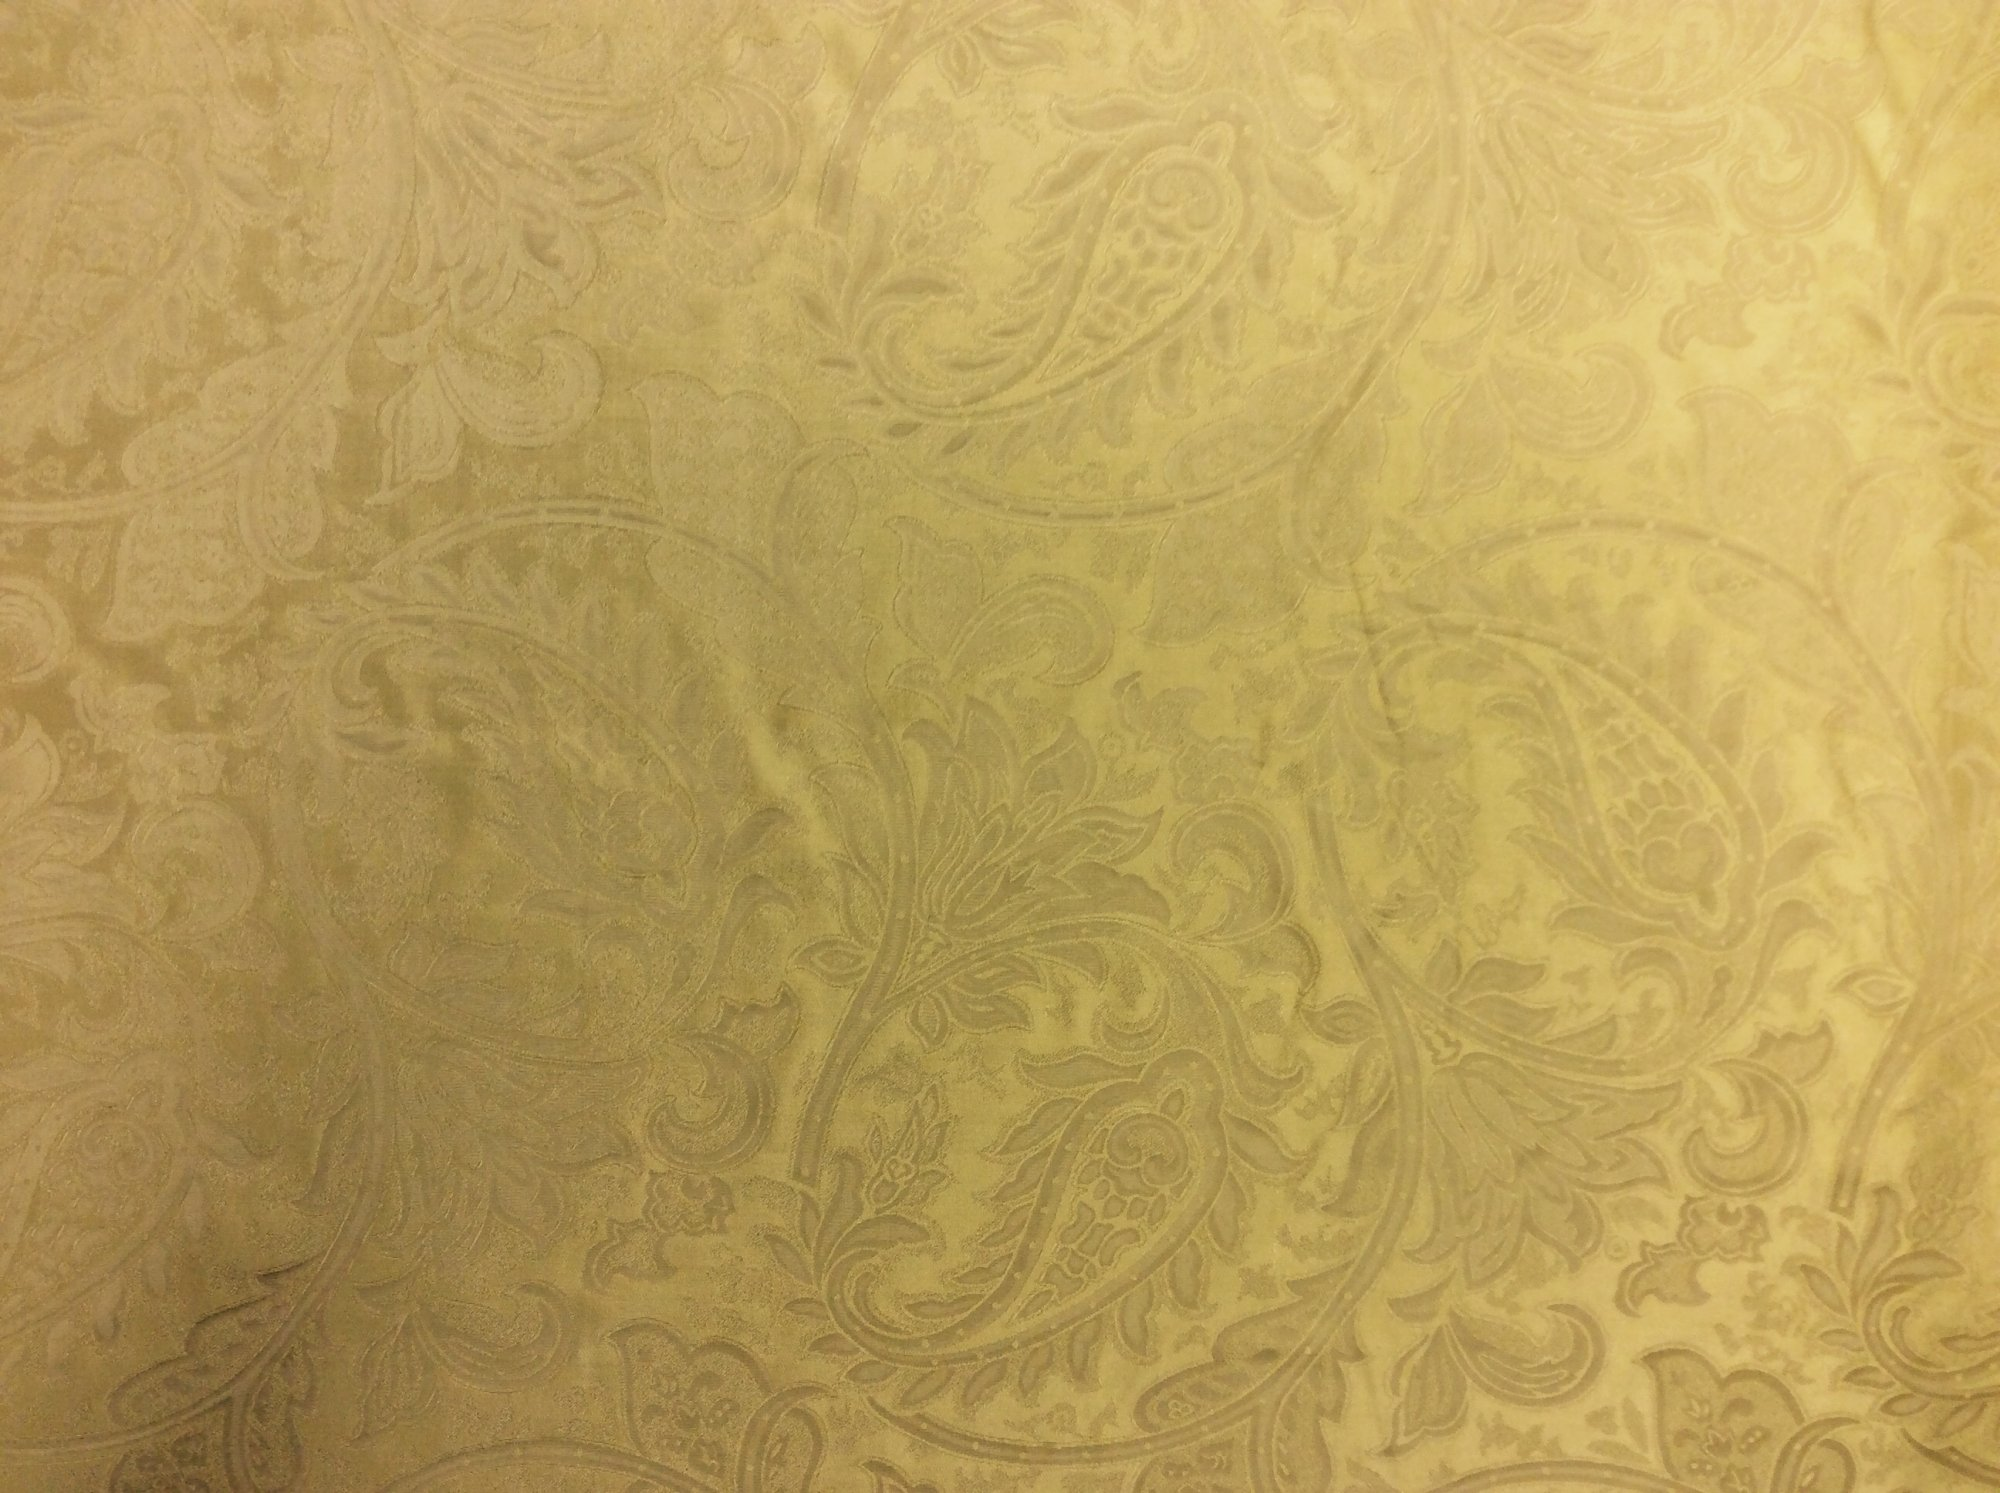 Antique Gold Silk Leaf Damask Nature Floral Paisley Drapery Home Dec Fabric NL28